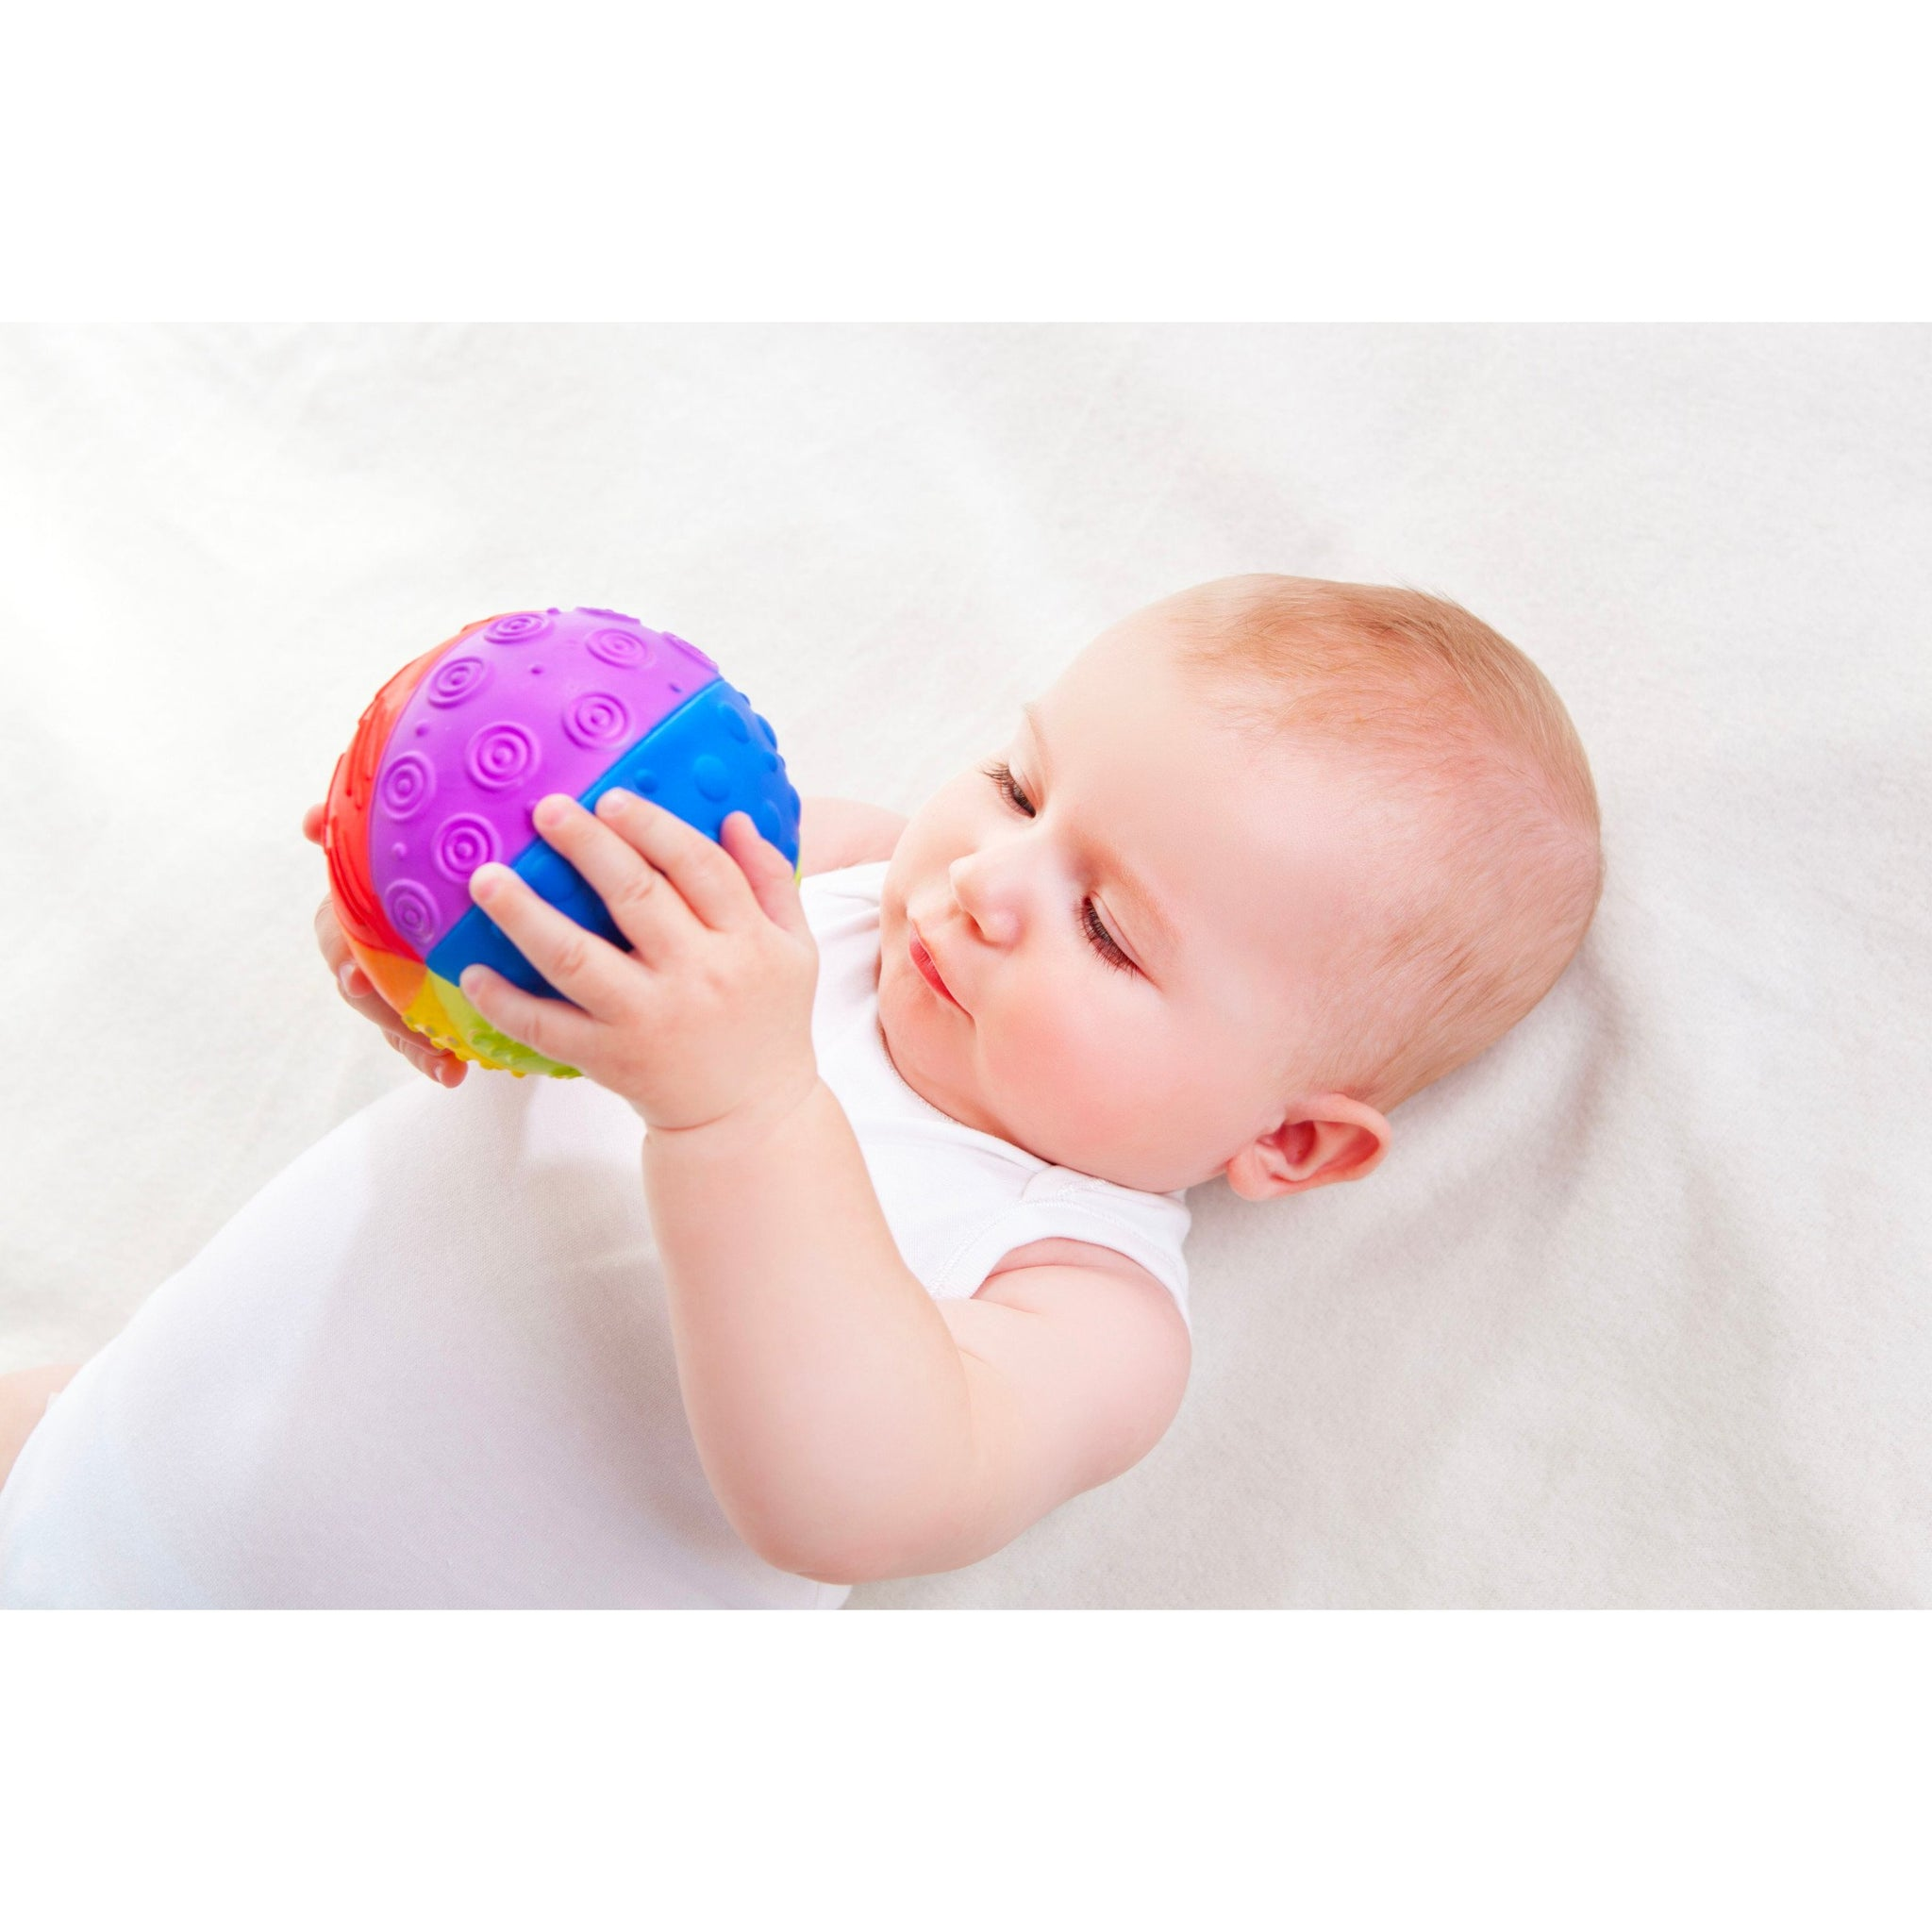 Natural Rubber Rainbow Sensory Ball Caaocho Baby Gifts at Little Earth Nest Eco Shop